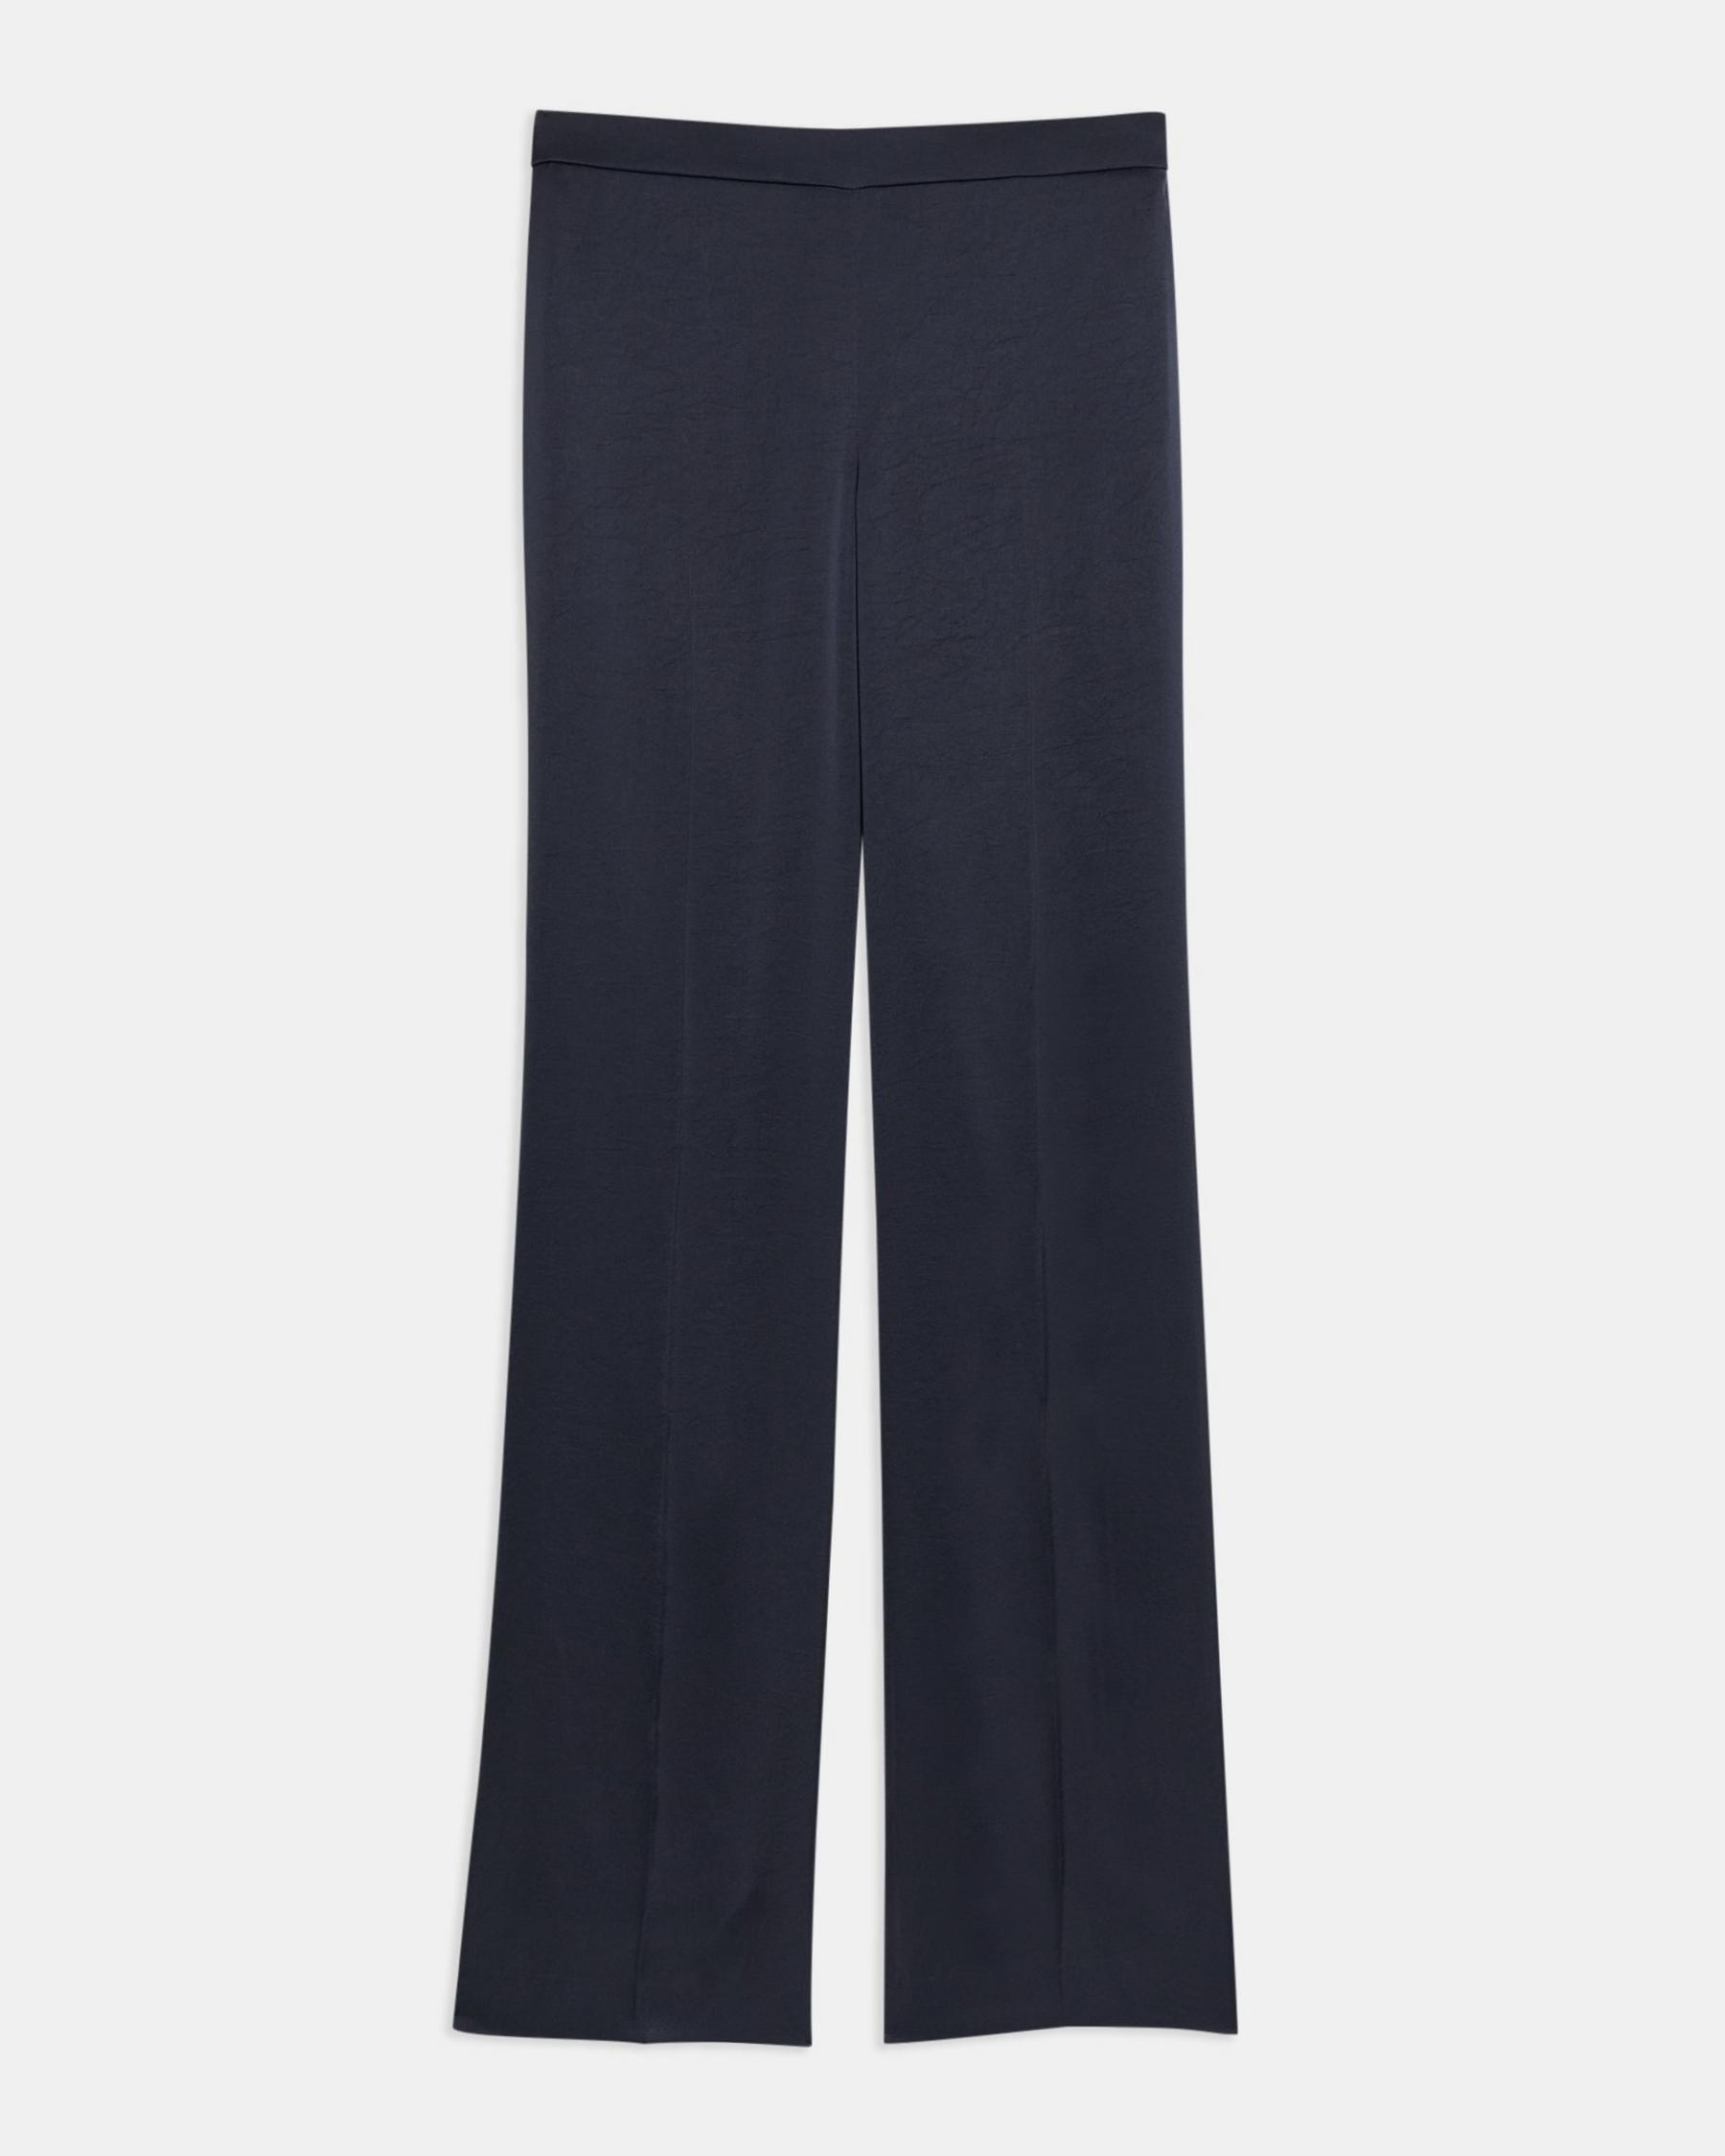 Straight-Leg Pull On Pant Pant in Crushed Satin 4